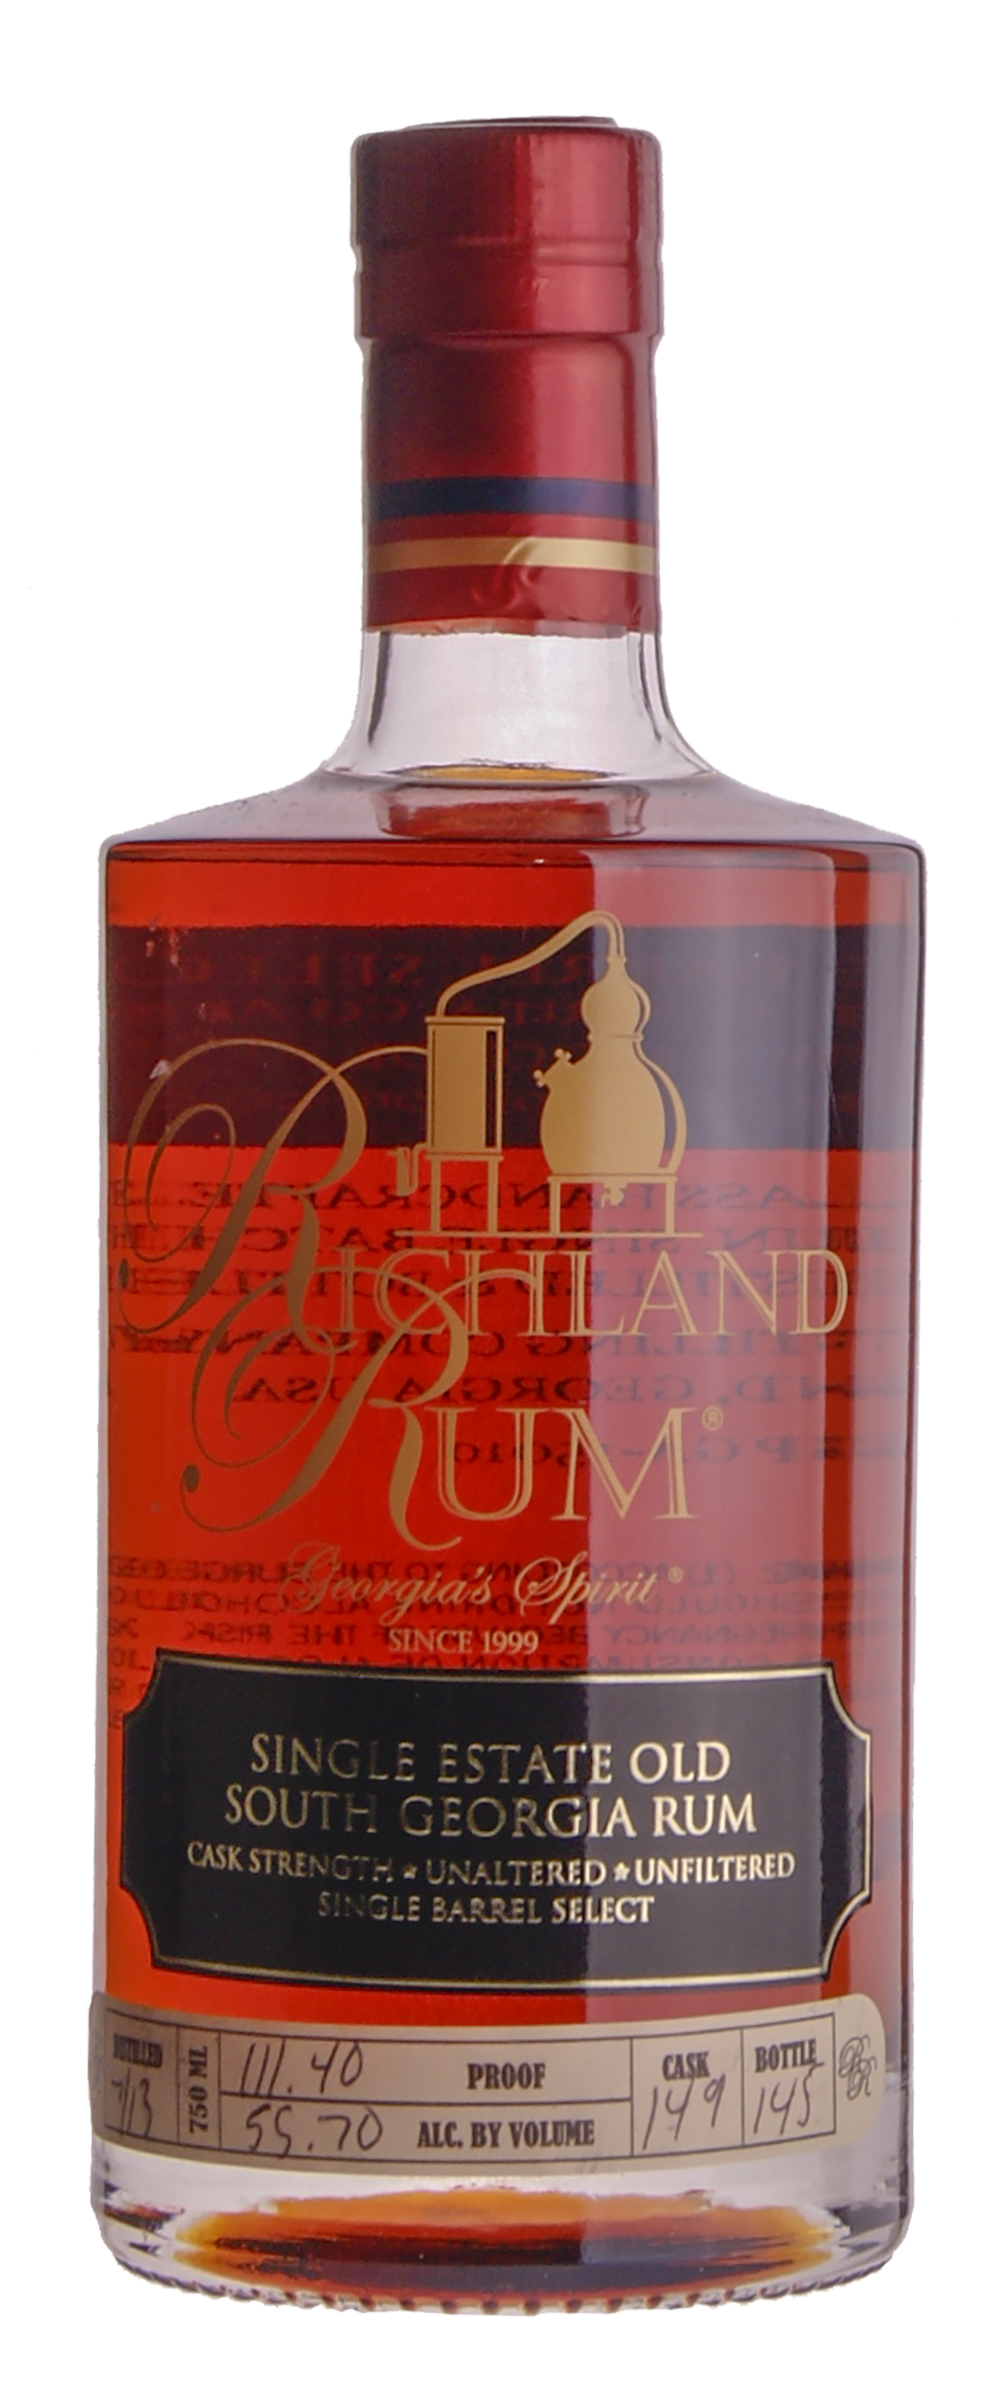 Privat: Richland Rum Old South Georgia Cask Strength